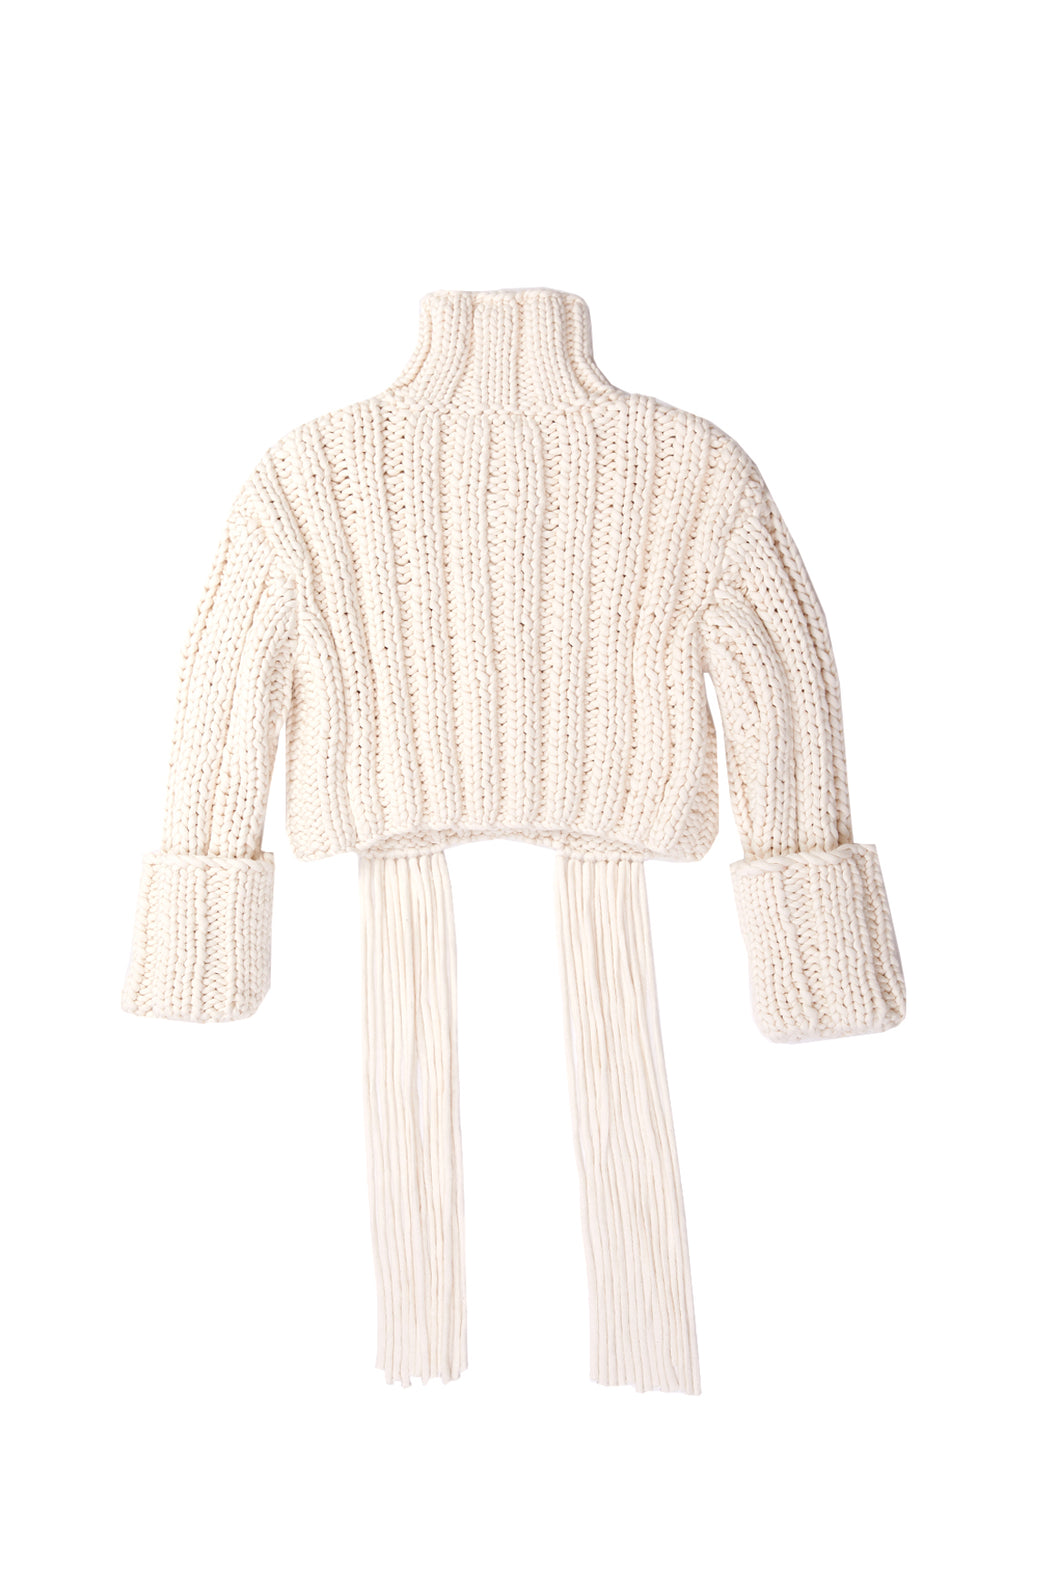 Cropped Cable Knit Sweater - White